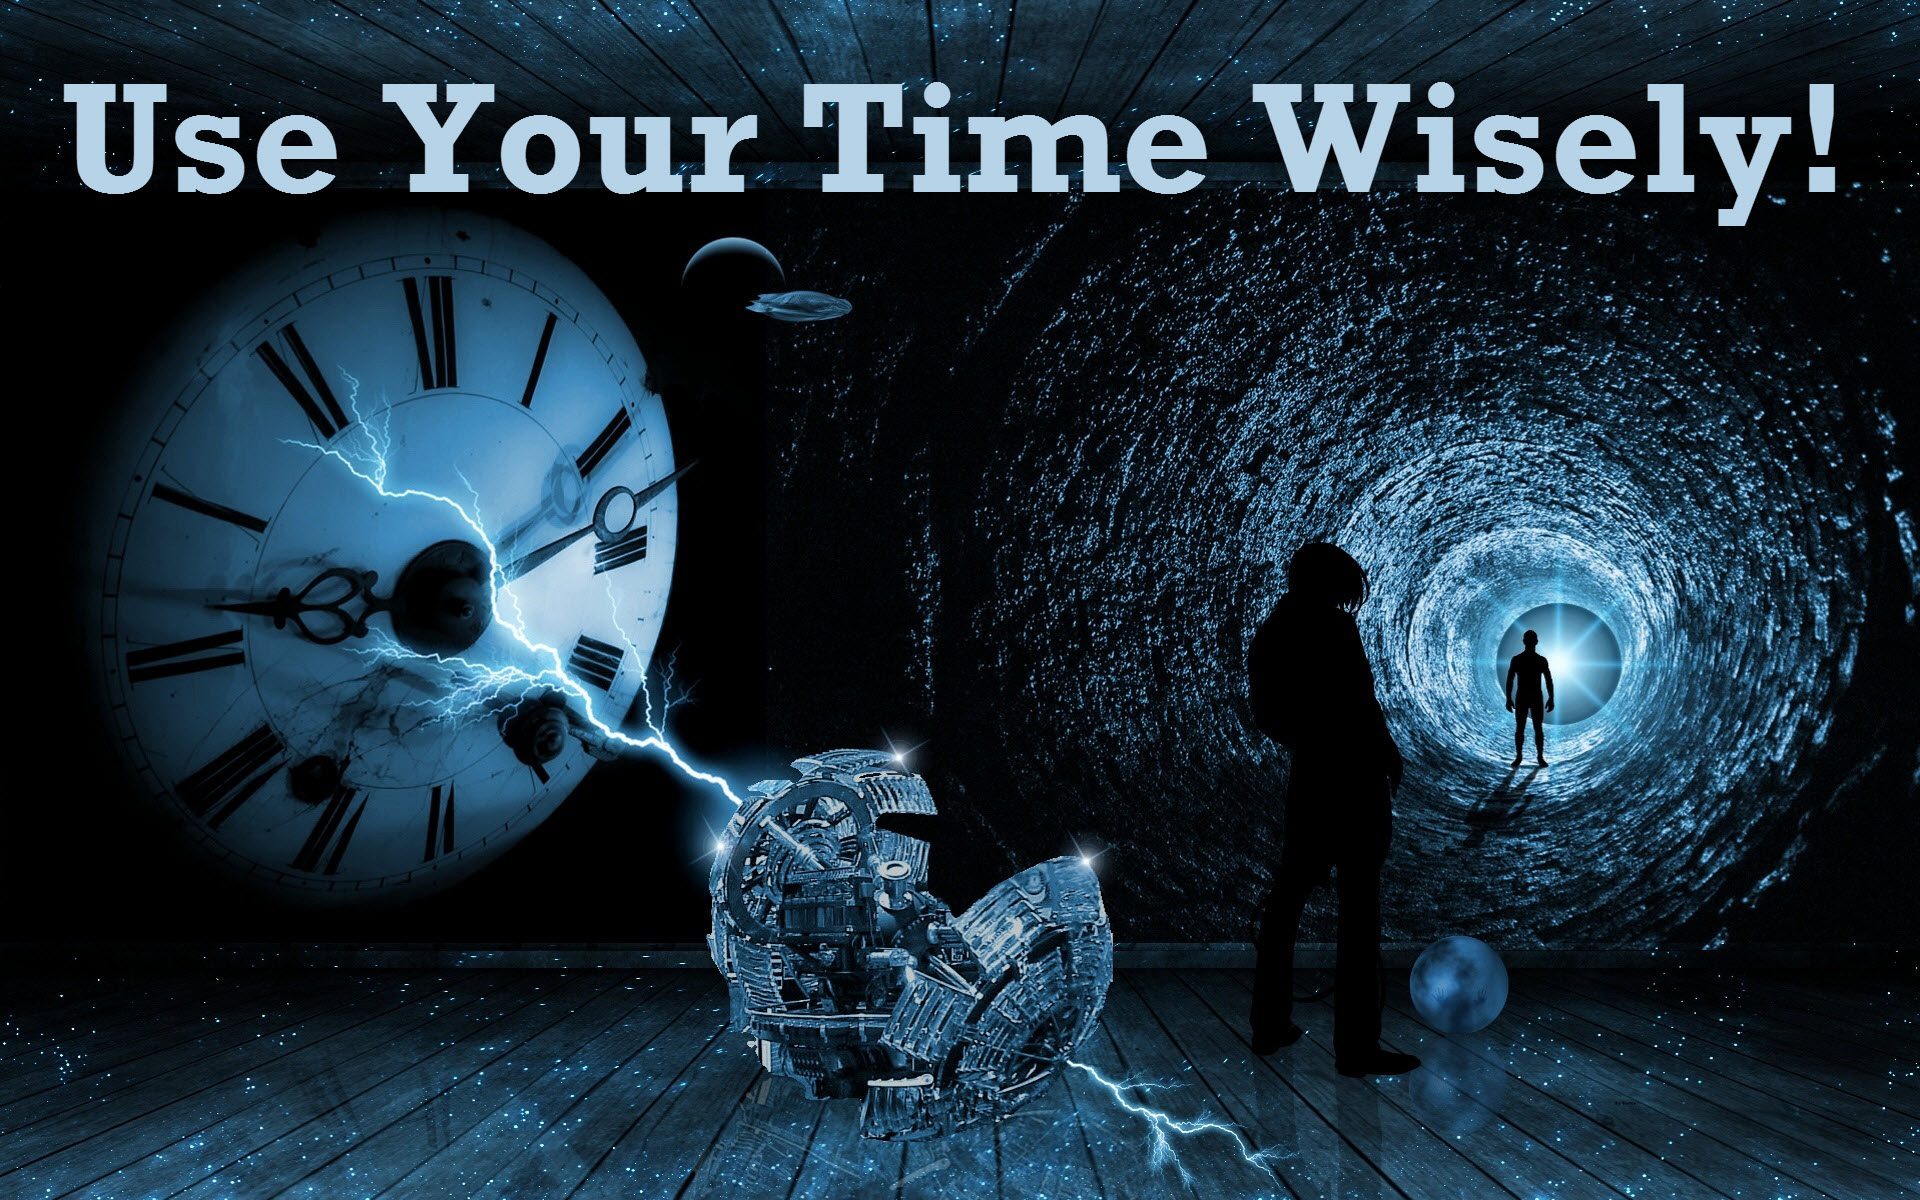 use your time wisely orlando espinosa